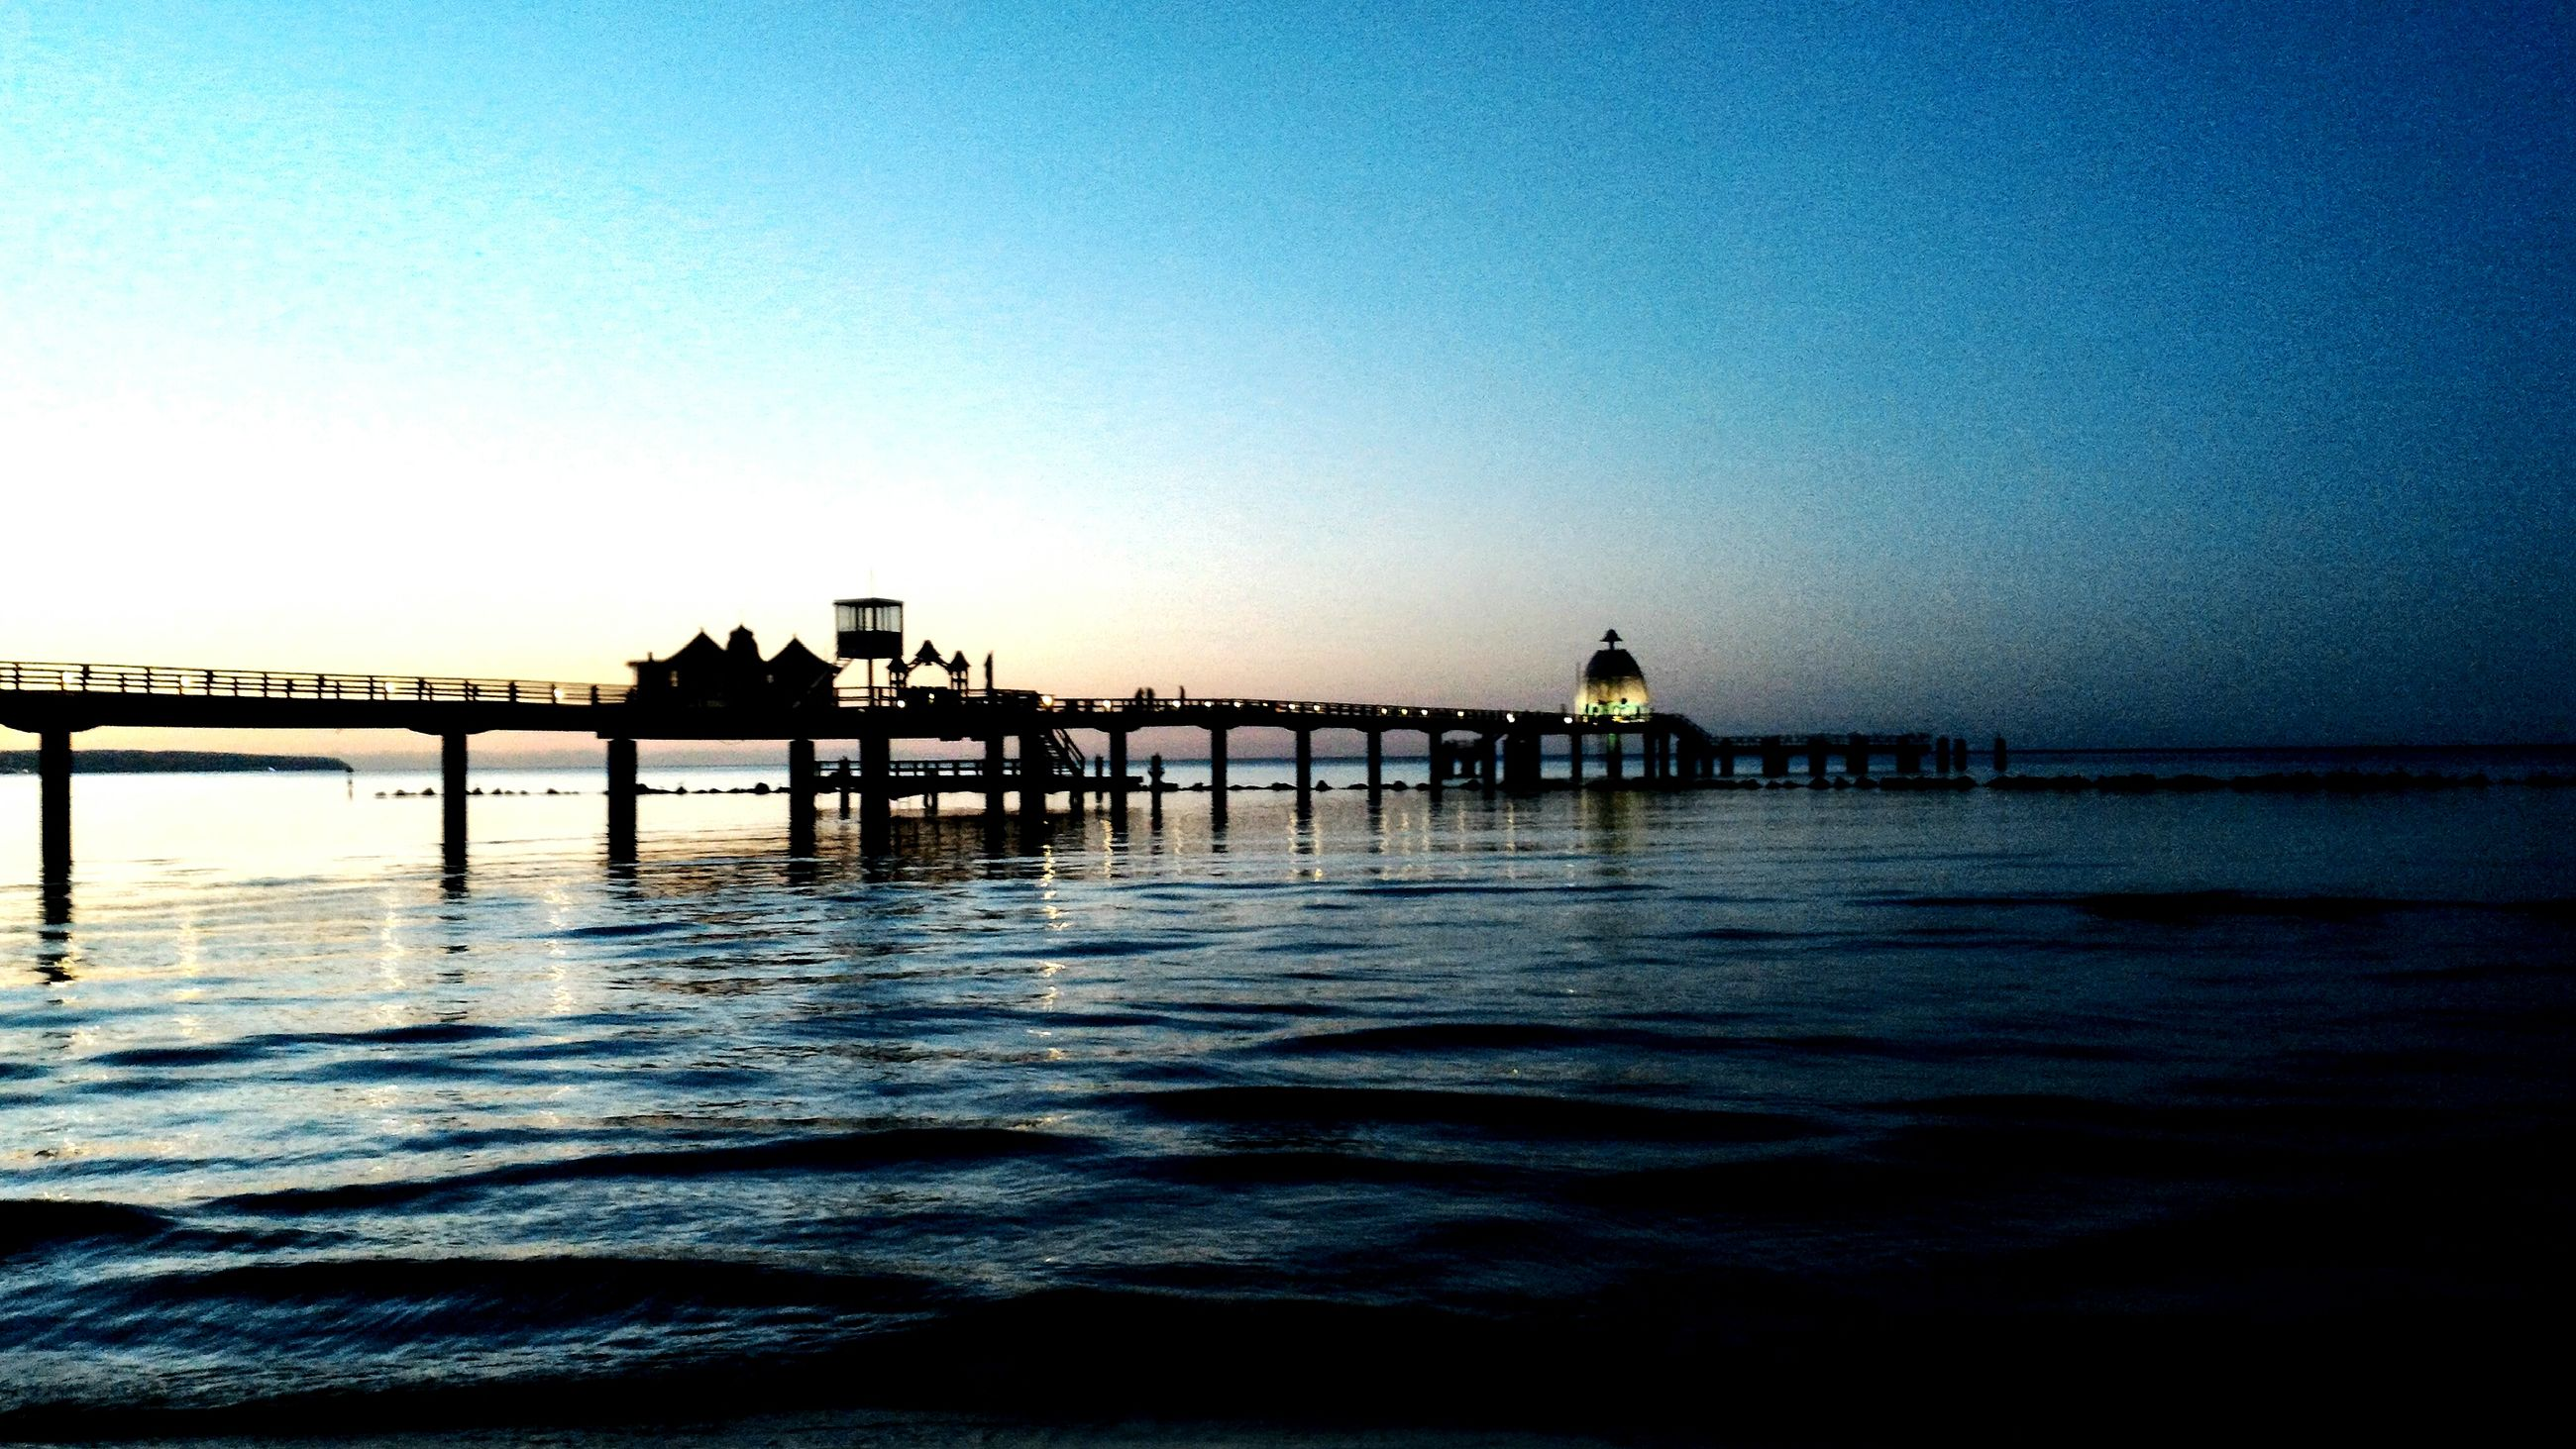 water, clear sky, copy space, pier, sea, built structure, tranquil scene, waterfront, tranquility, architecture, silhouette, sunset, scenics, blue, dusk, nature, reflection, beauty in nature, rippled, bridge - man made structure